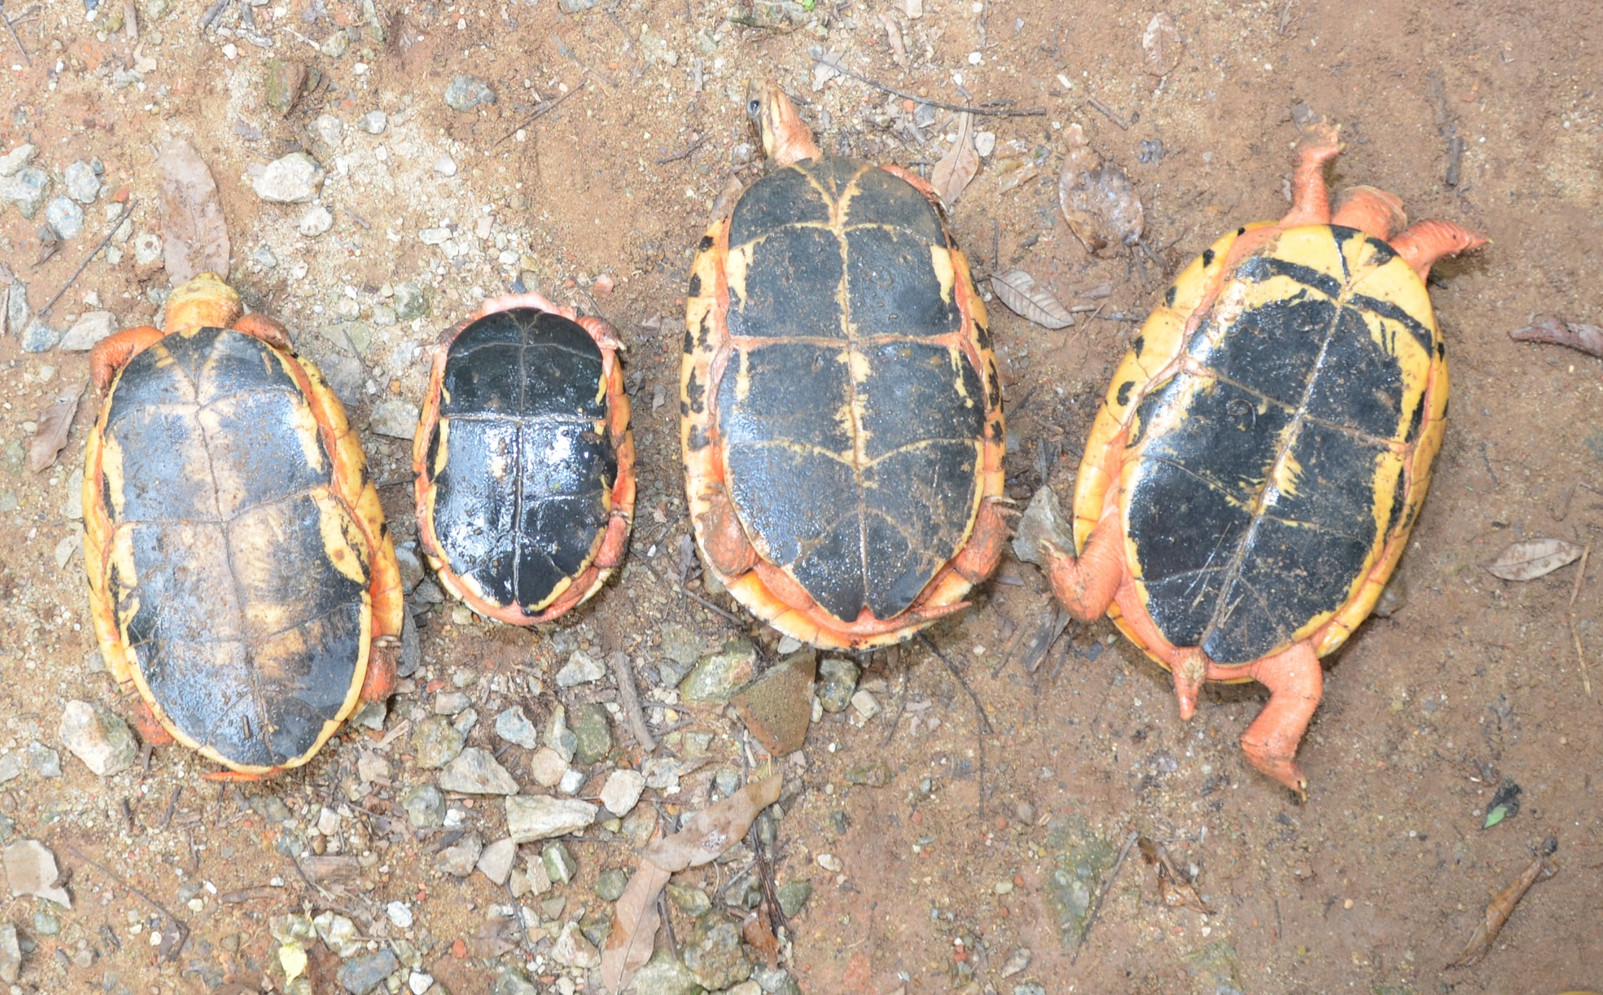 Left to right: C.t.luteocephala, C.t.trifasciata, C.c.meieri, C.c.cyclornata